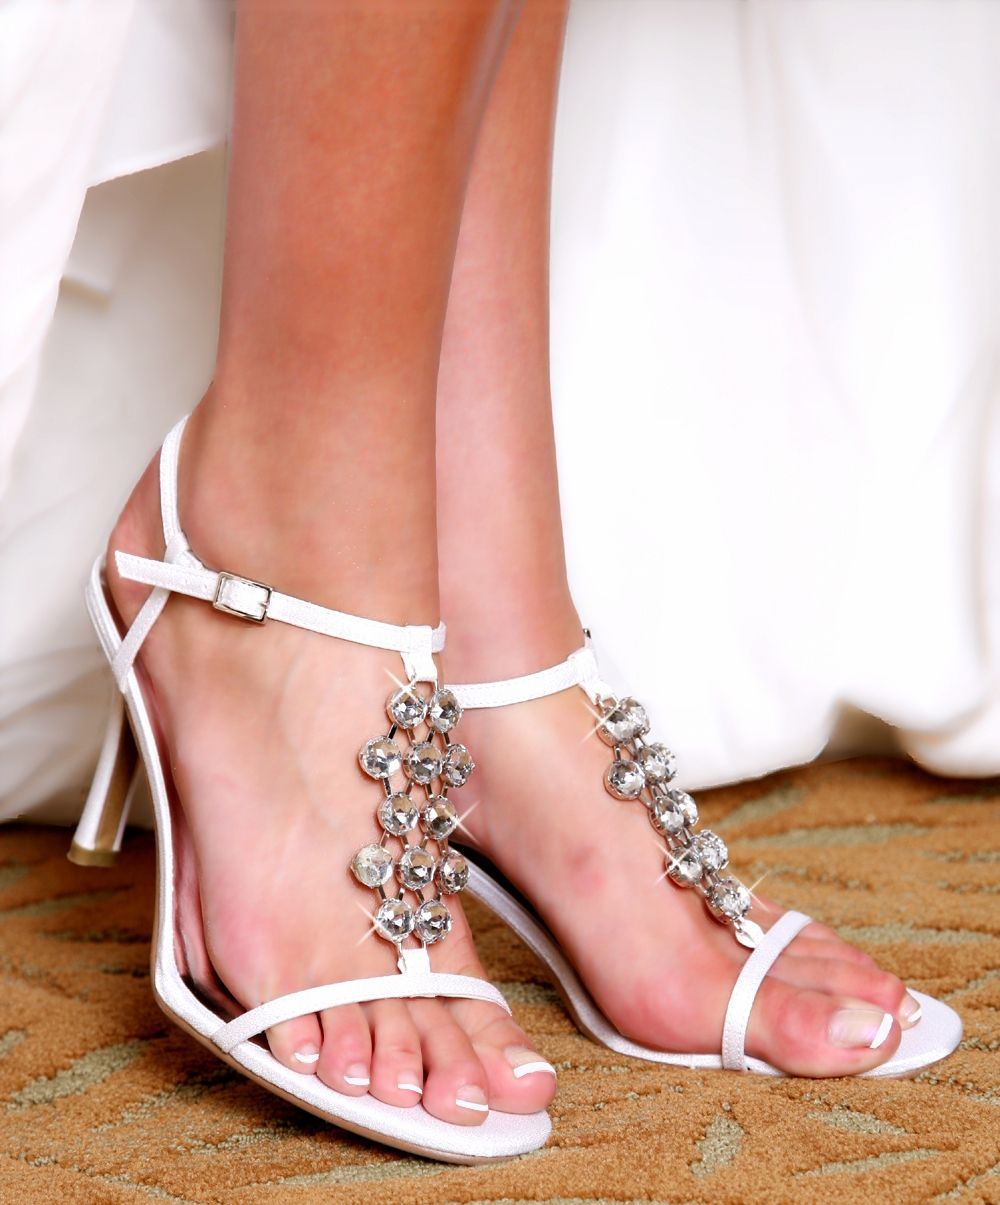 En Vogue Dyeable Bridal Wedding Shoes #WeddingShoes #BridalShoes  #withthisbling